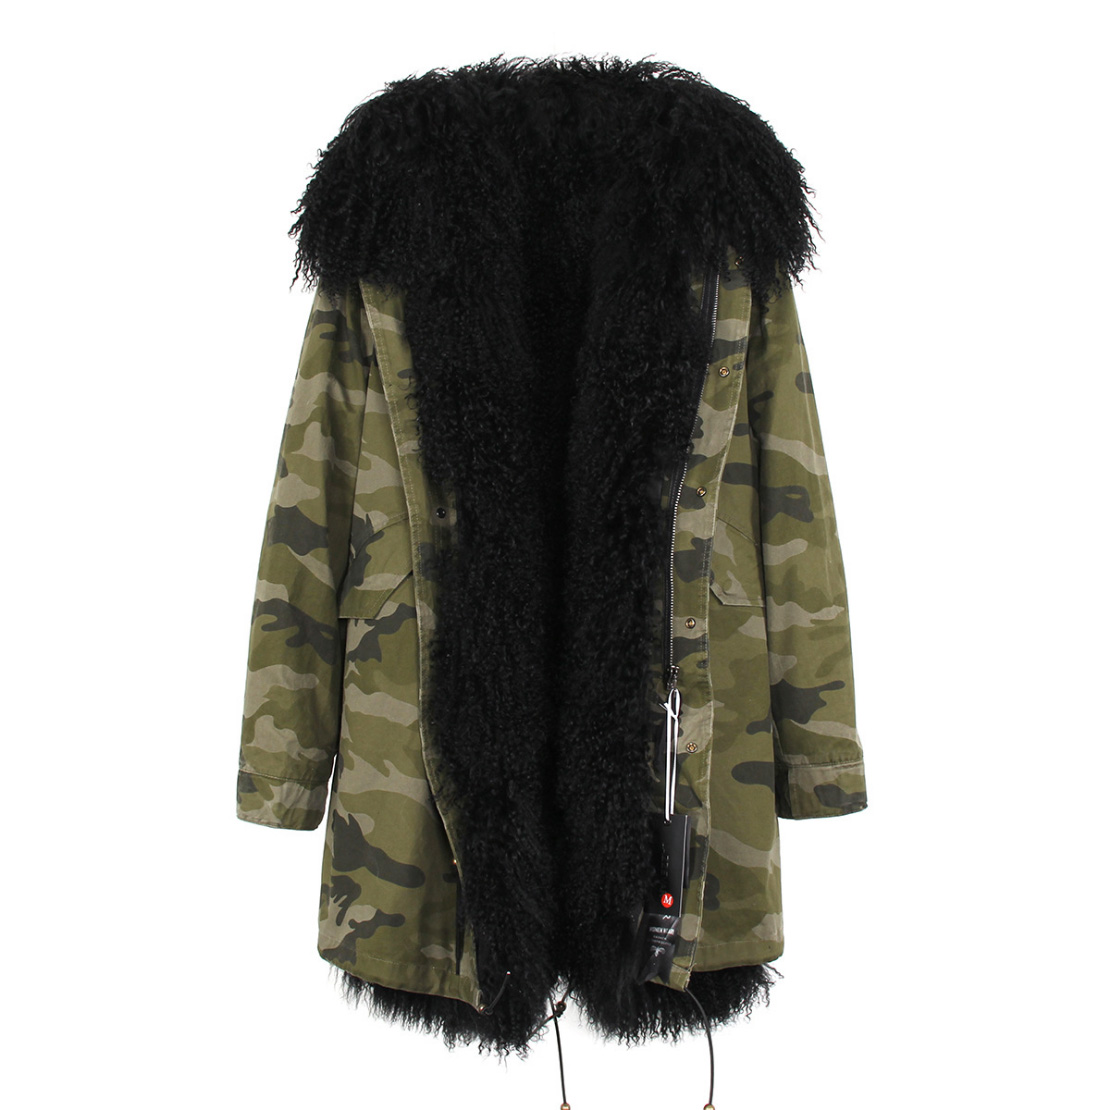 Tibet Sheep Fur Hooded Parka 119 Details 18